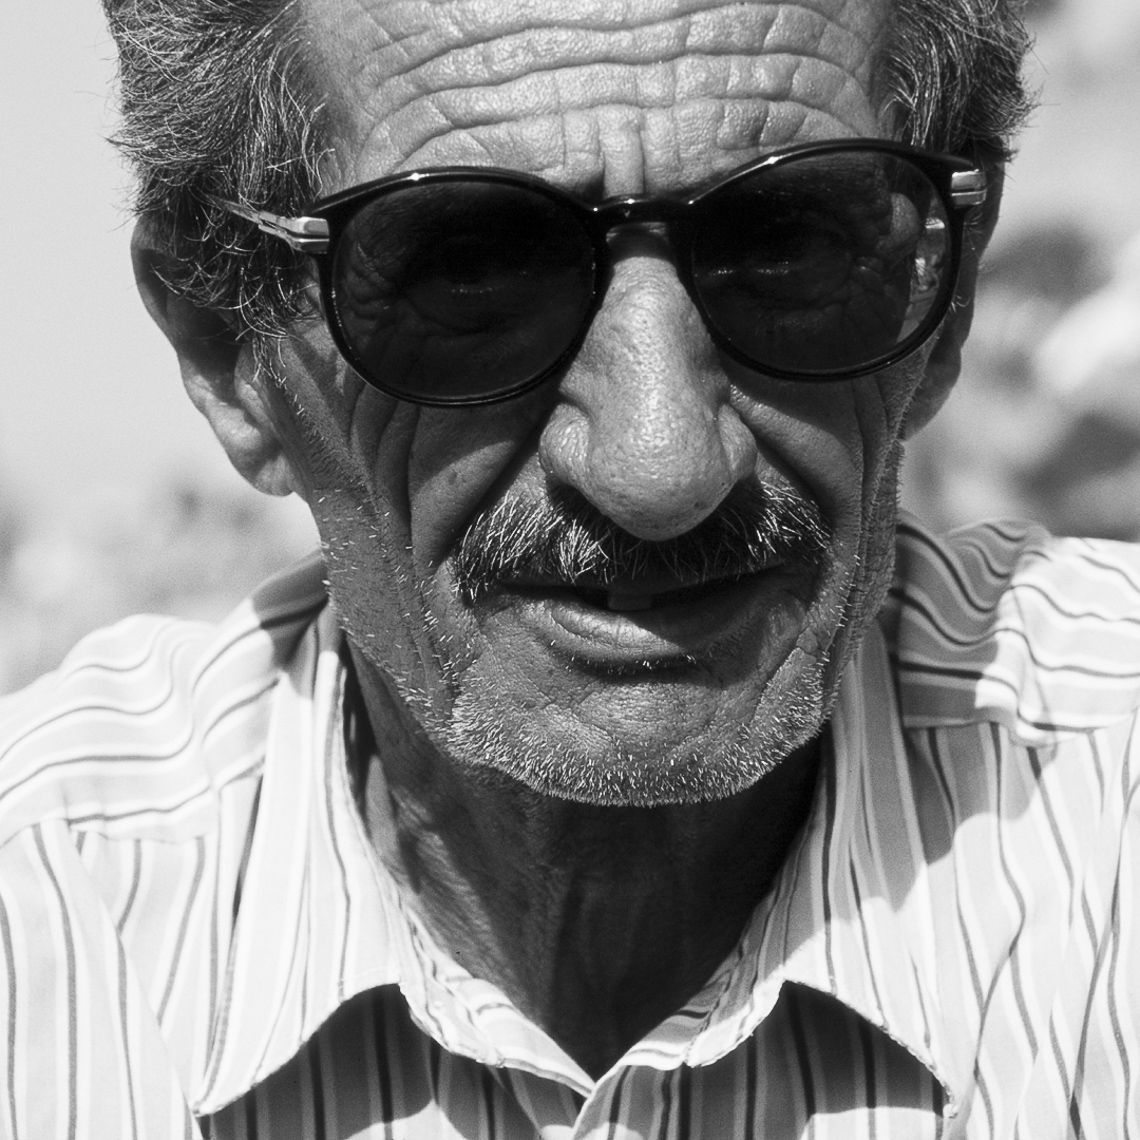 Old_man_with_sunglasses_copy